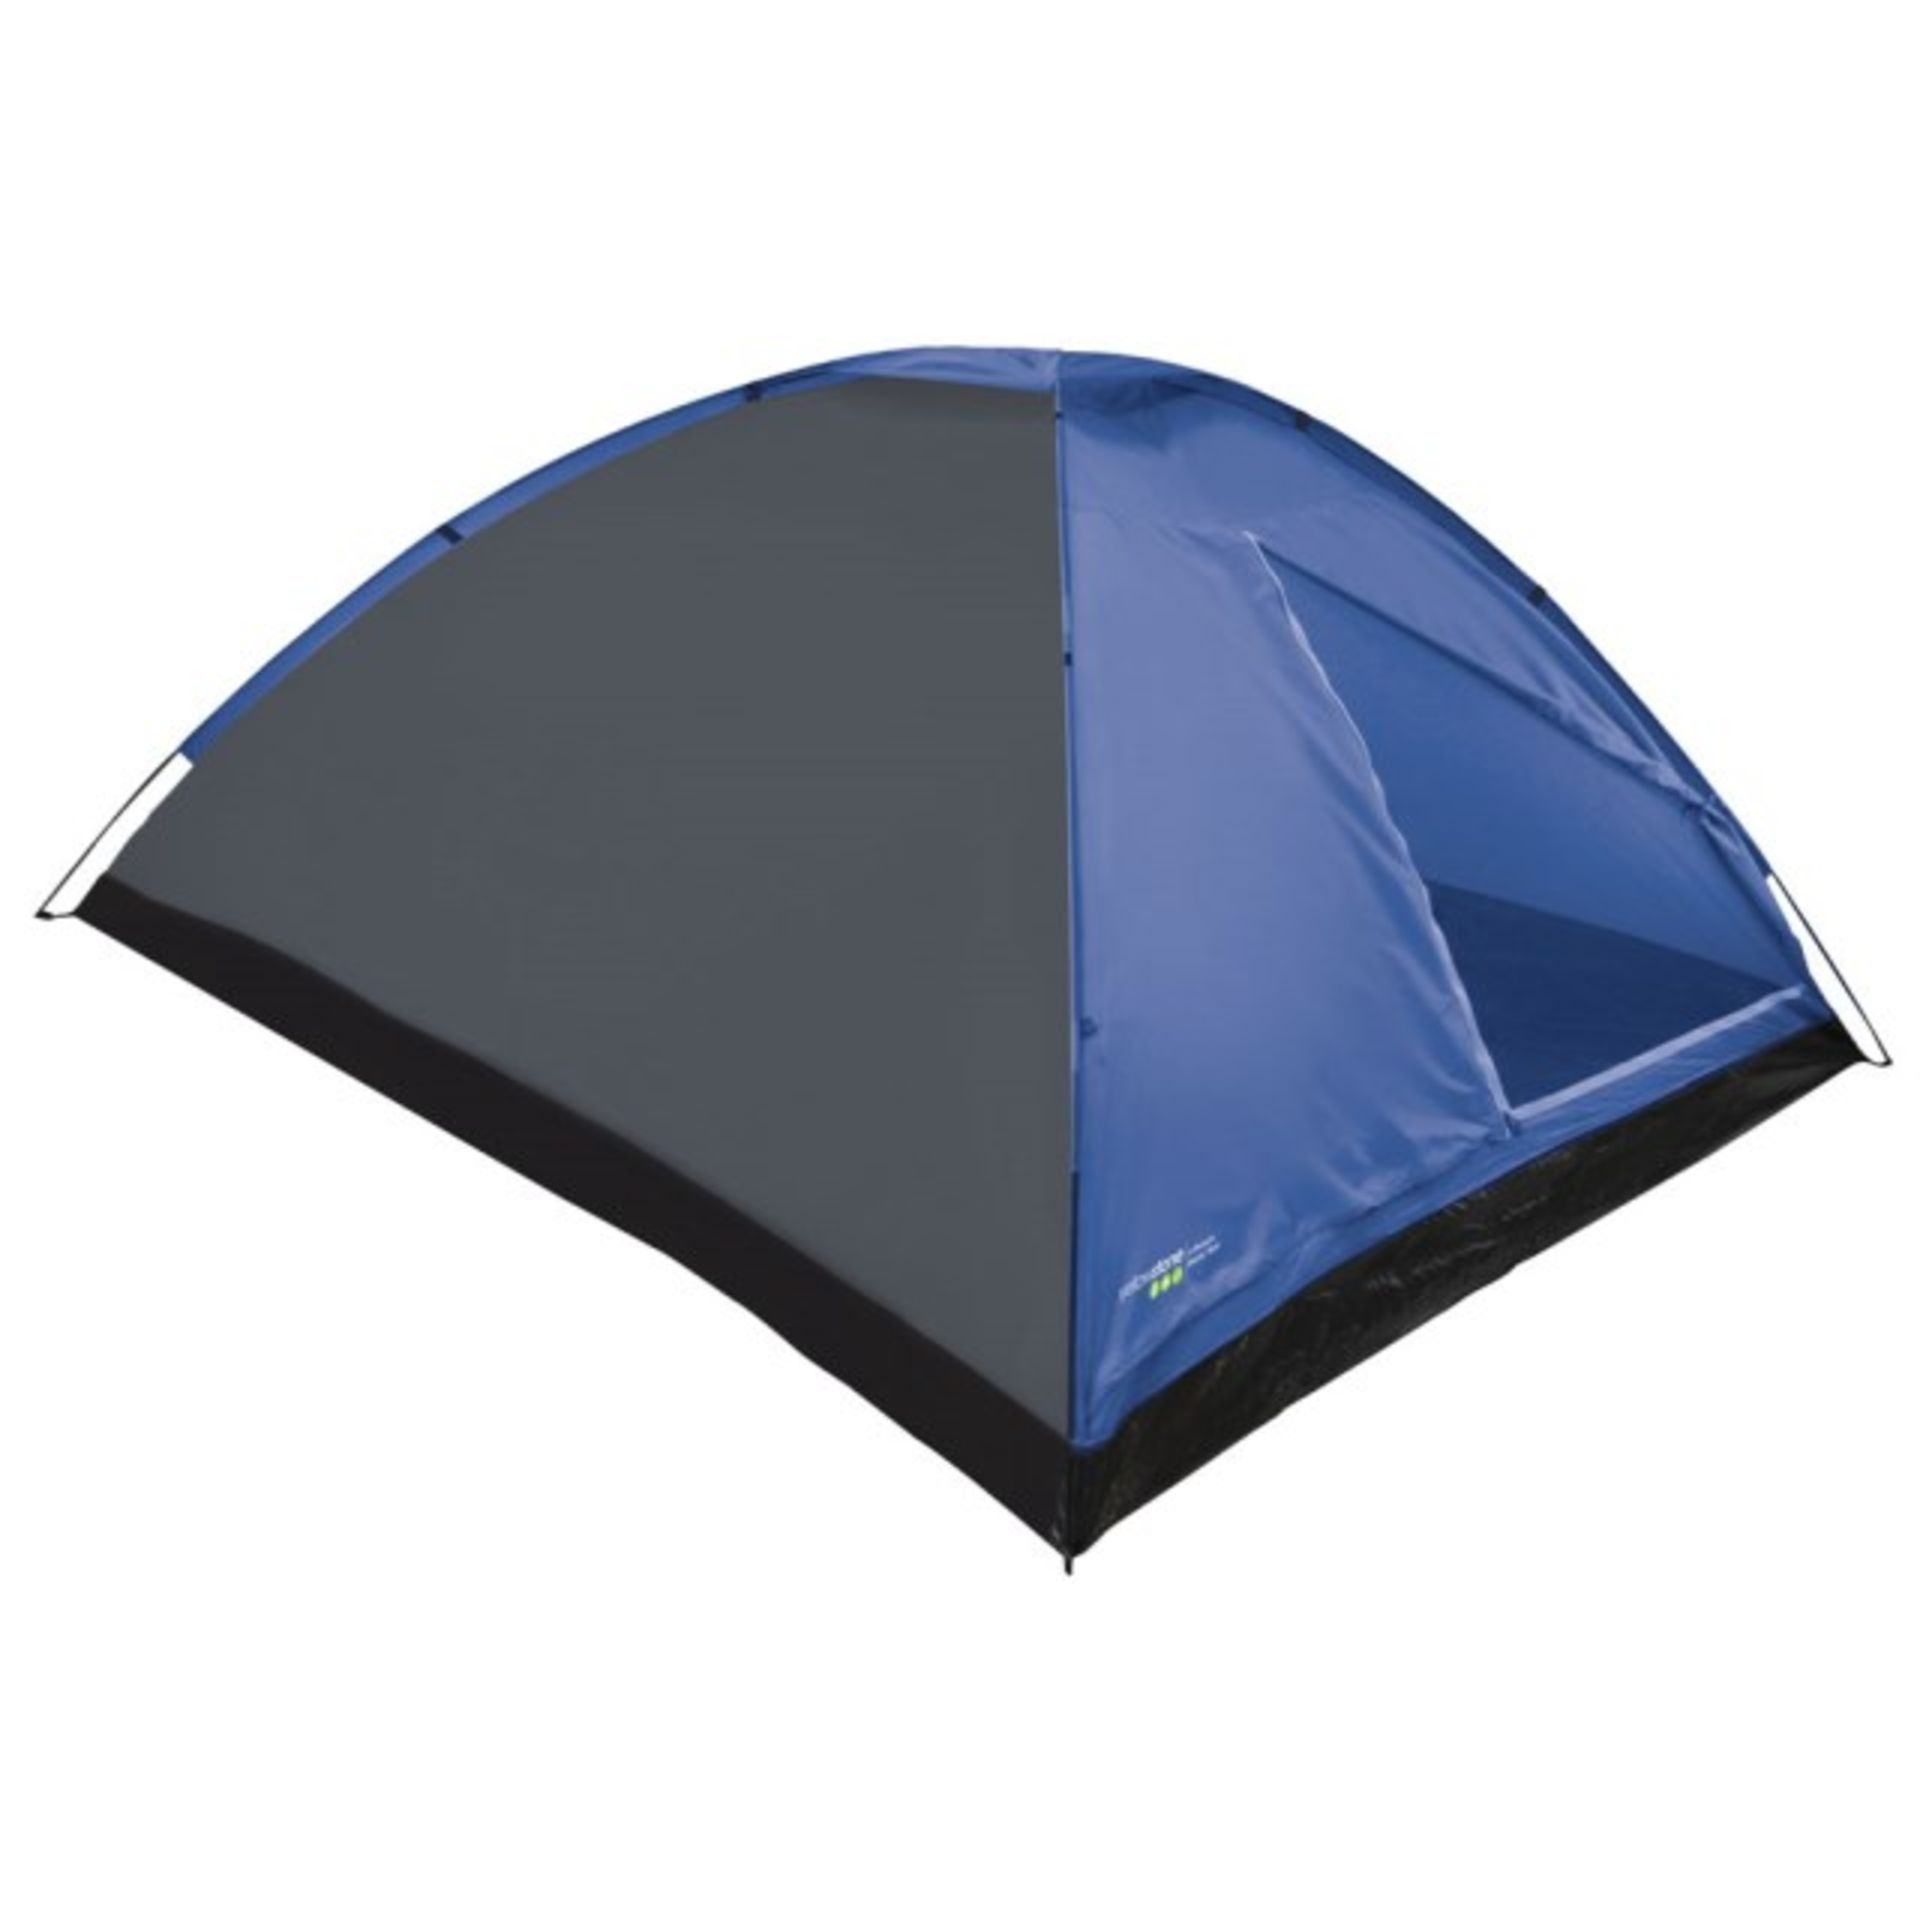 + VAT Brand New 4 Person Dome Tent With Taped seams And Fibreglass Poles RRP25.00